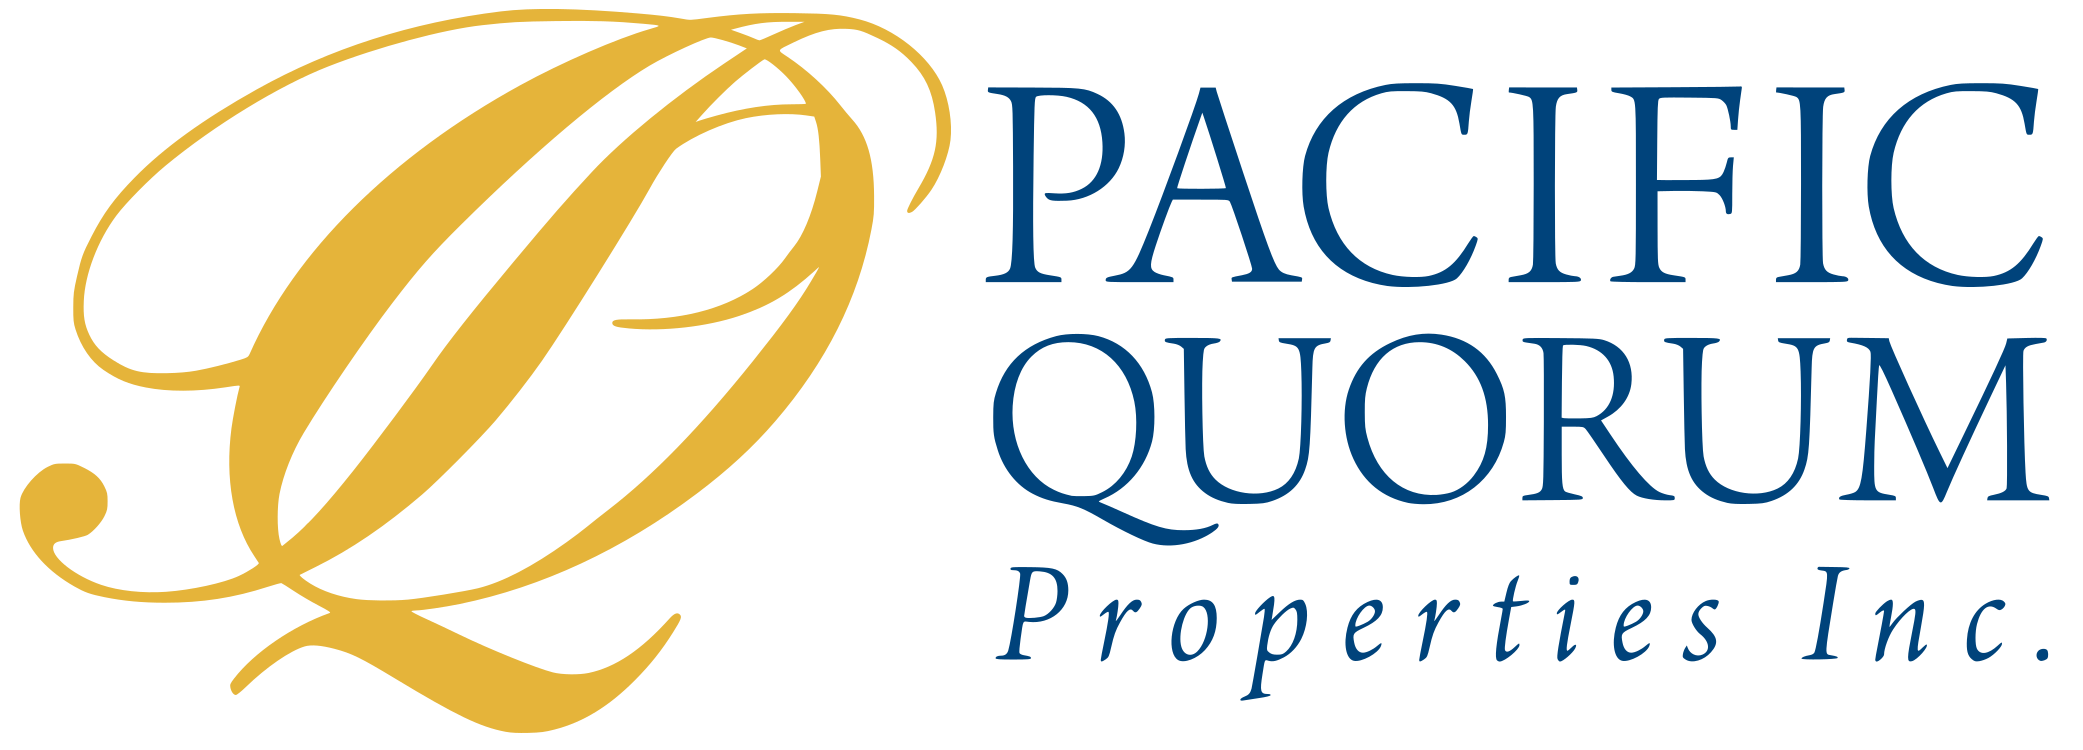 Pacific Quorum Properties Inc.